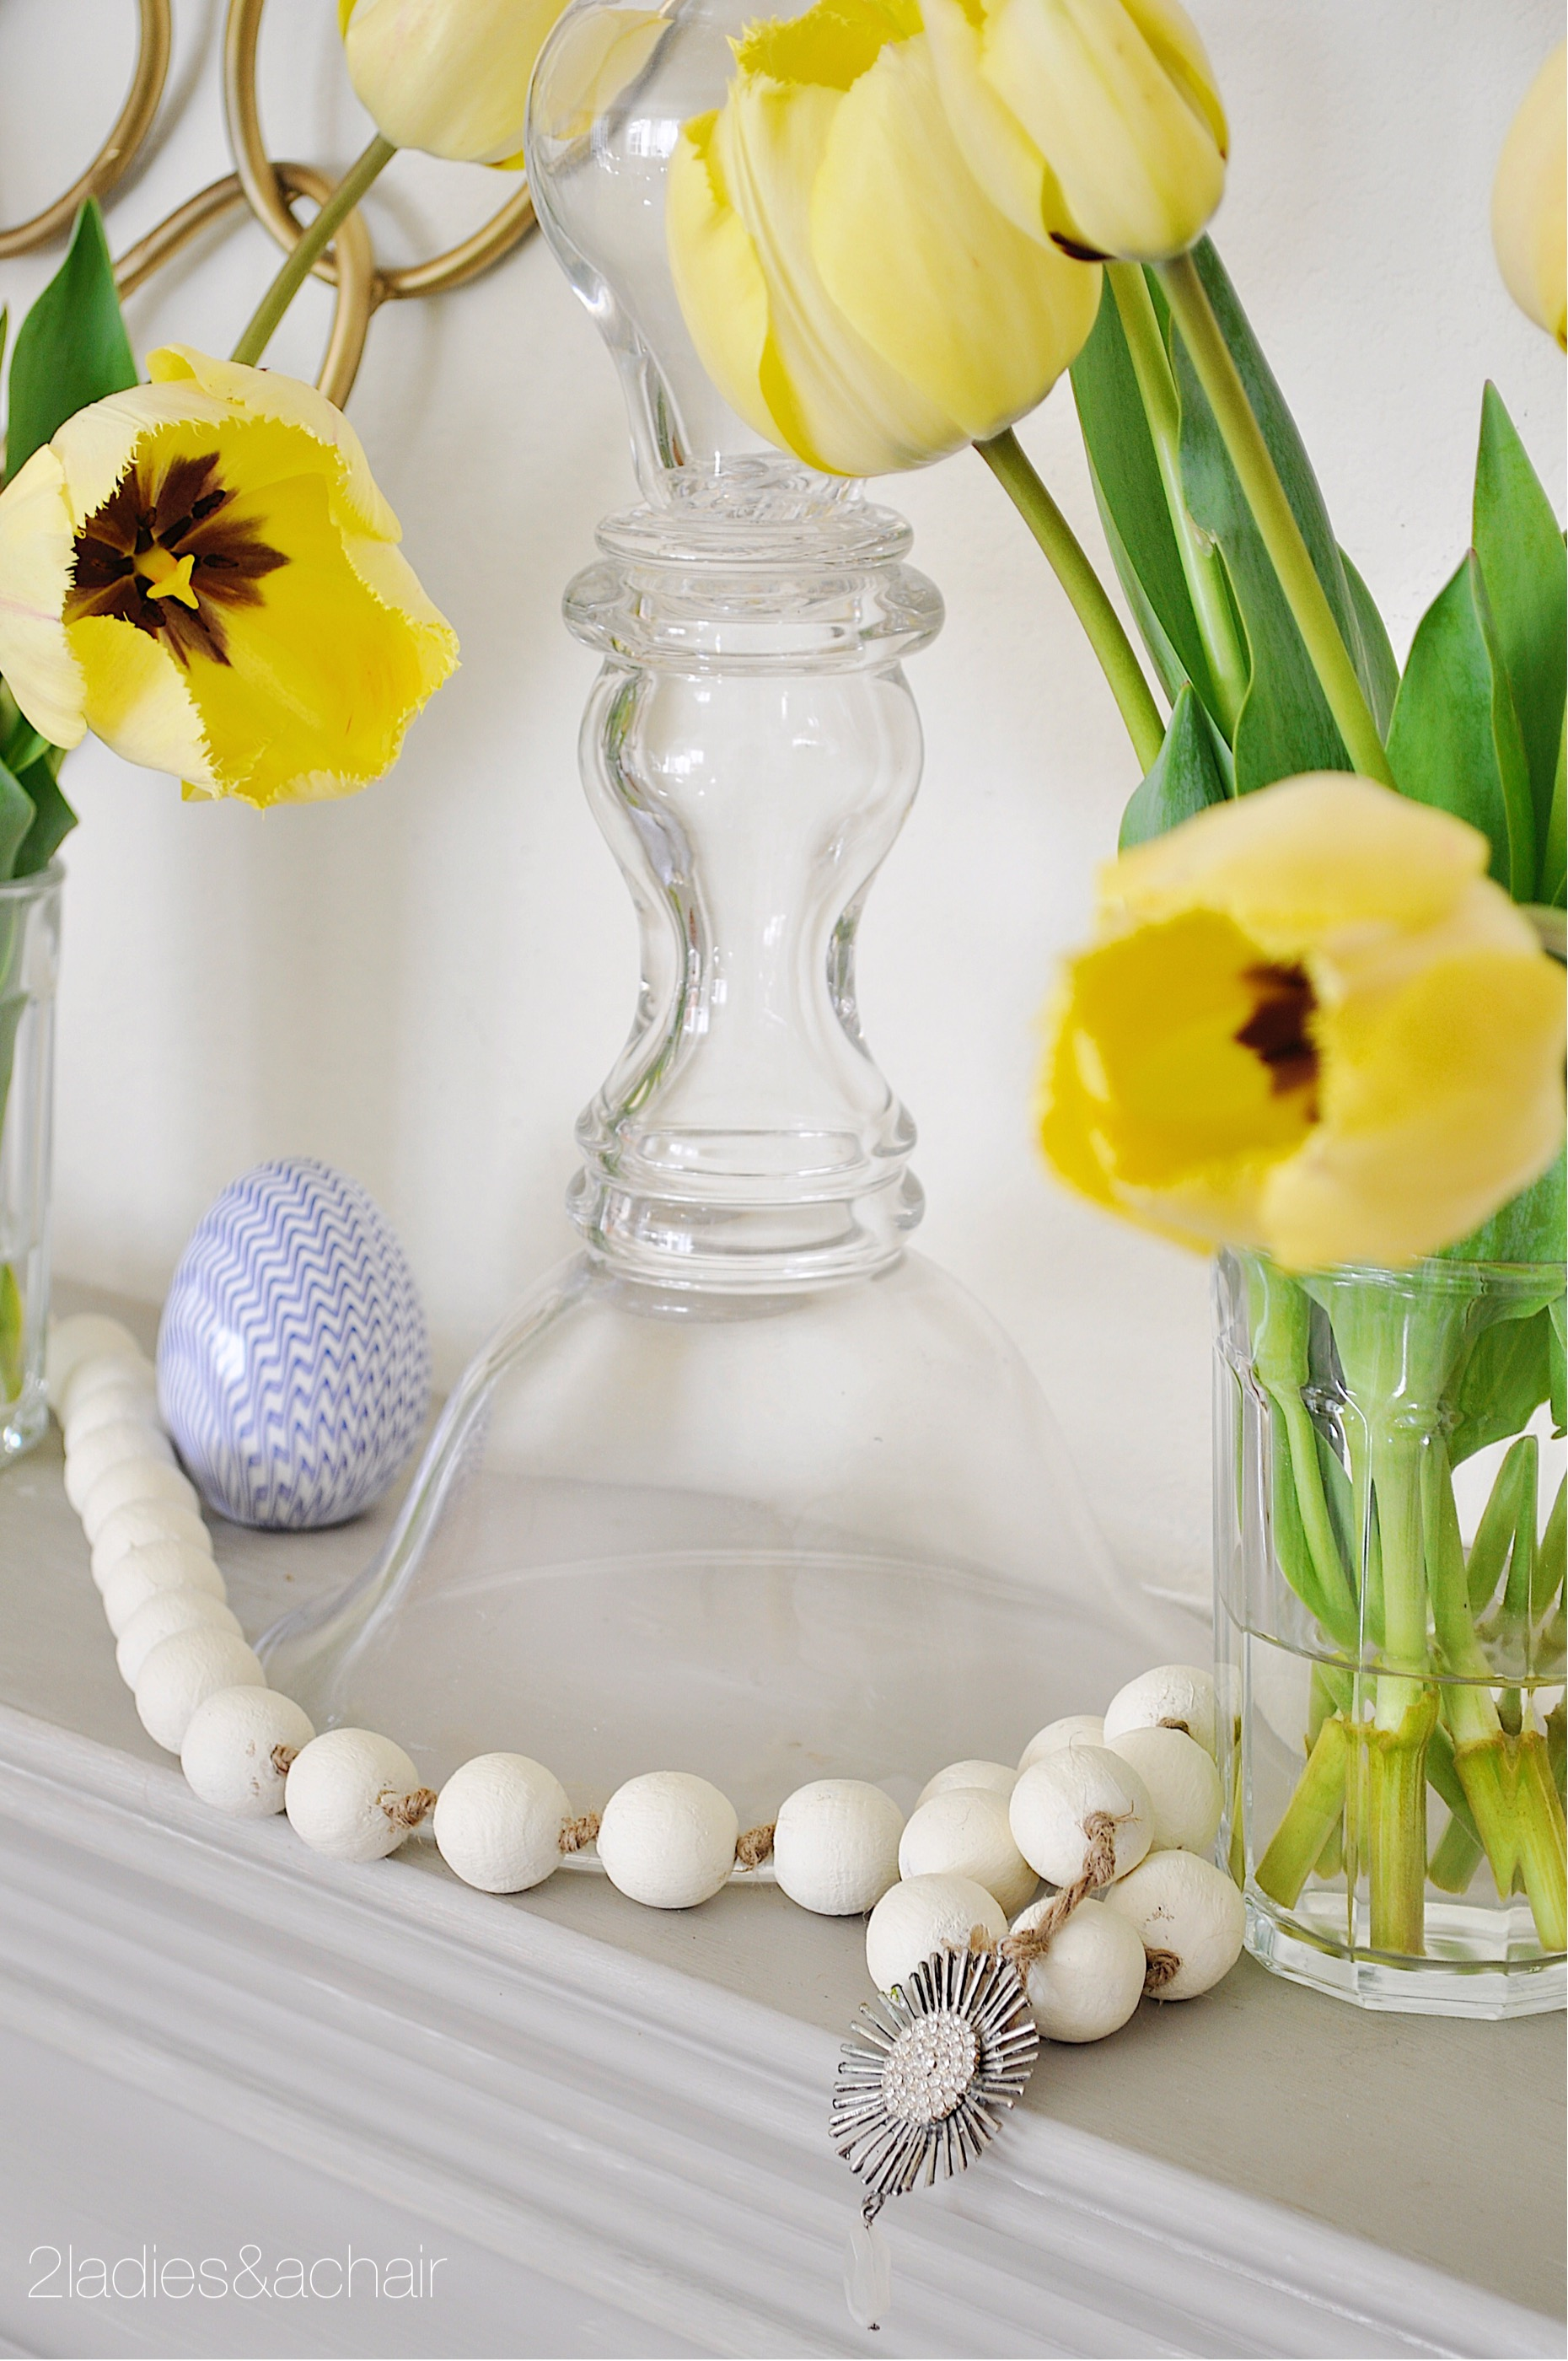 easter mantel decor IMG_1907.JPG